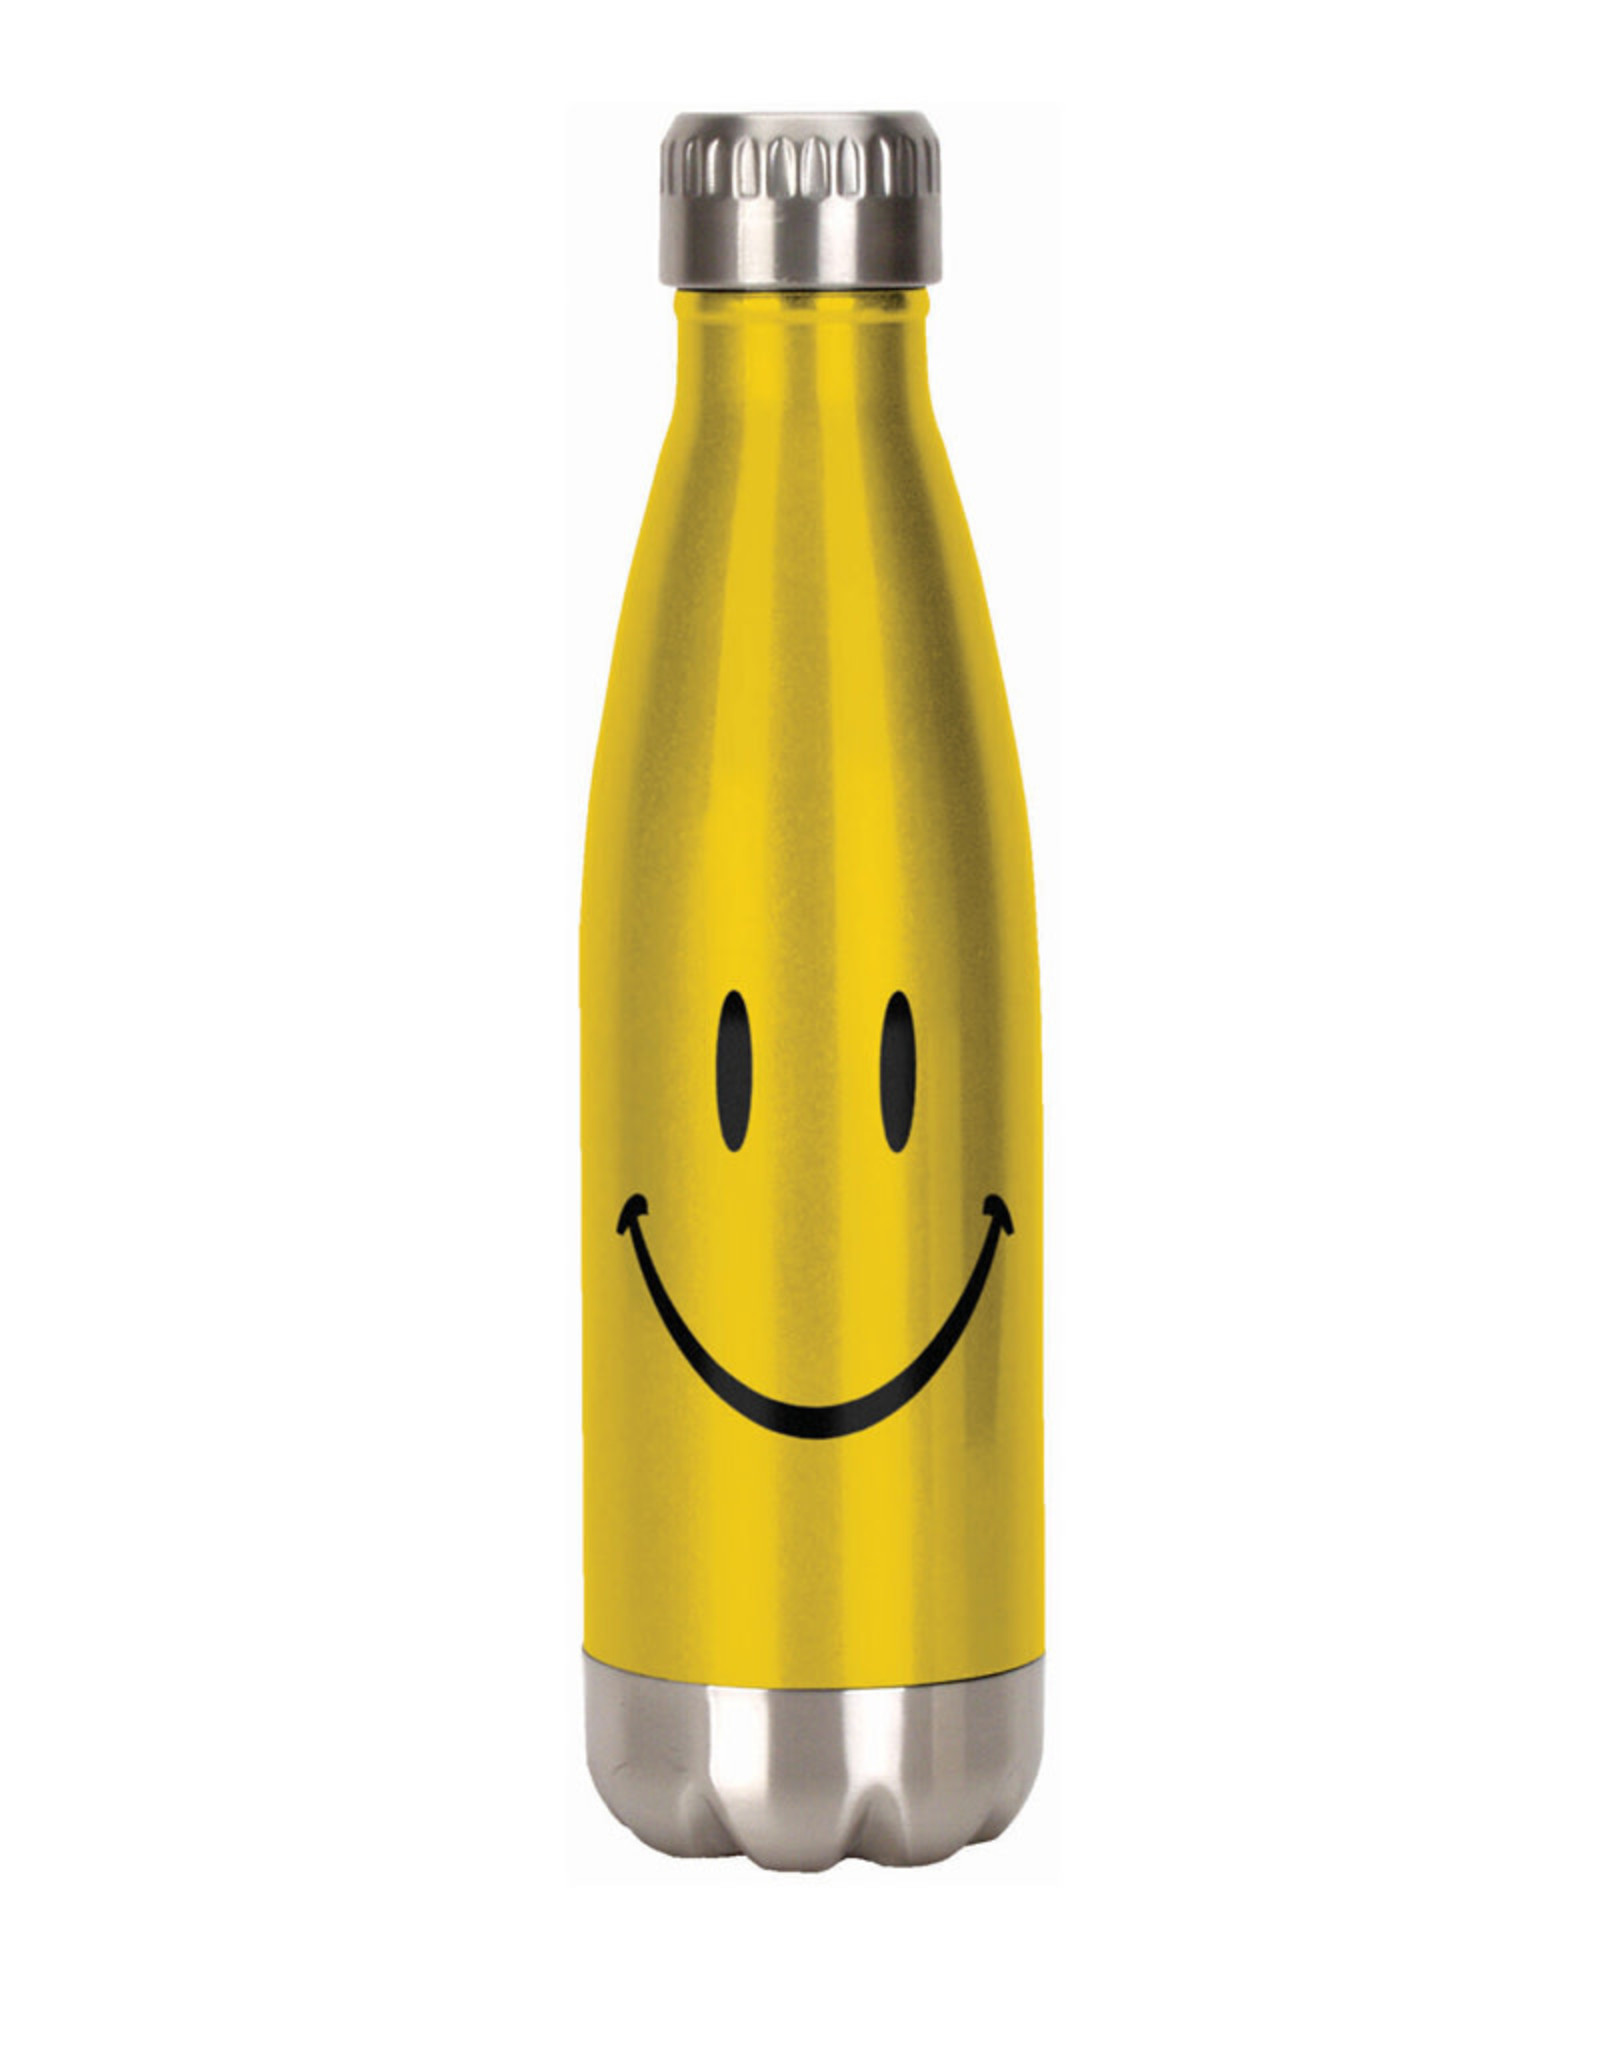 Smiley Face ( Stainless Steel Bottle )